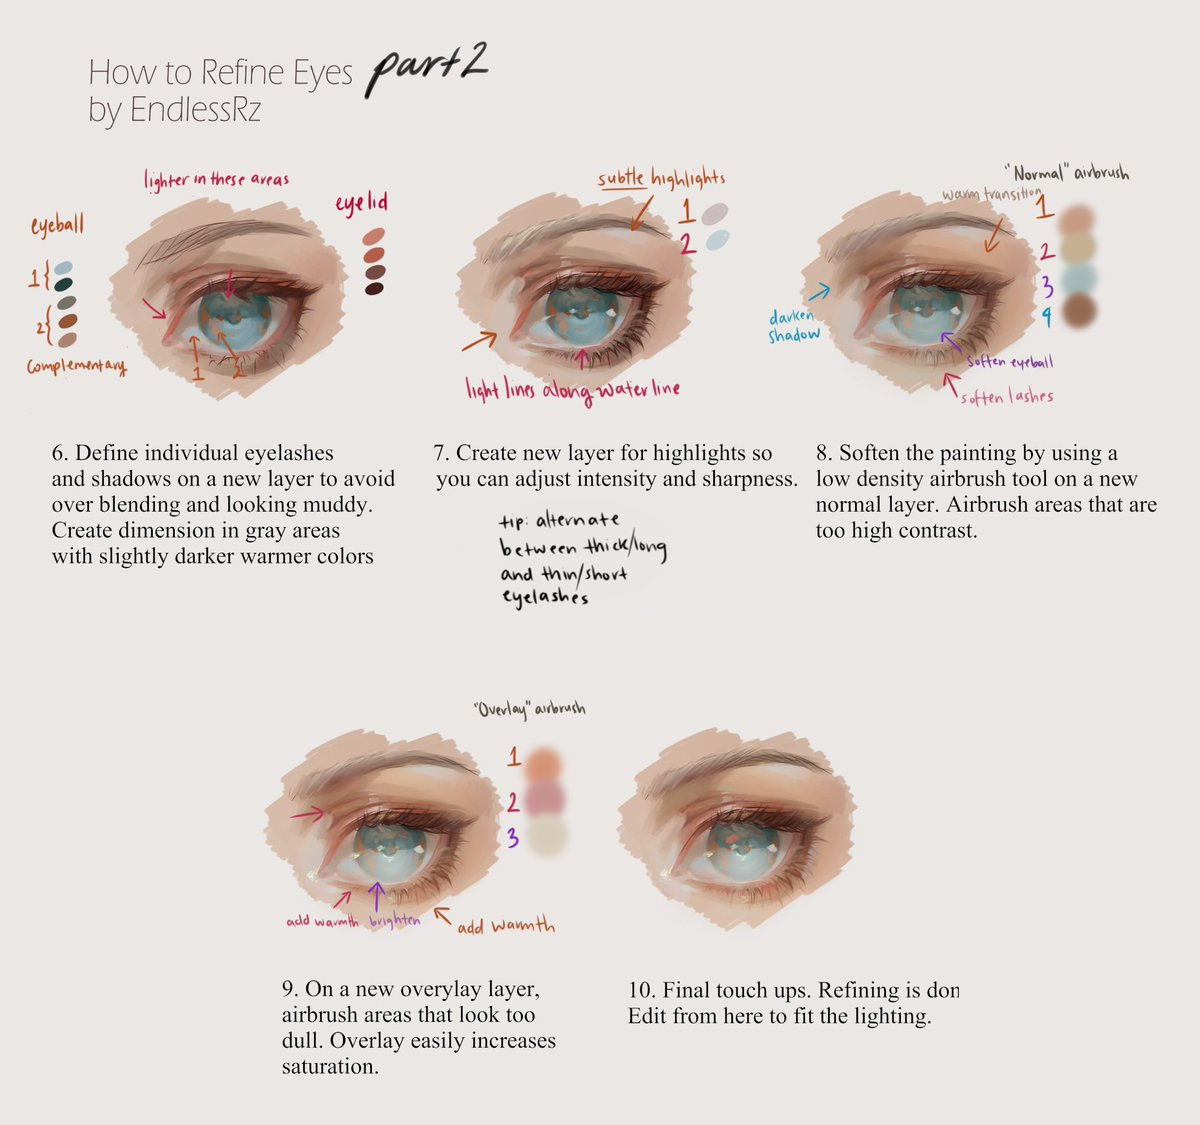 As promised, here's how I refine eyes step by step!